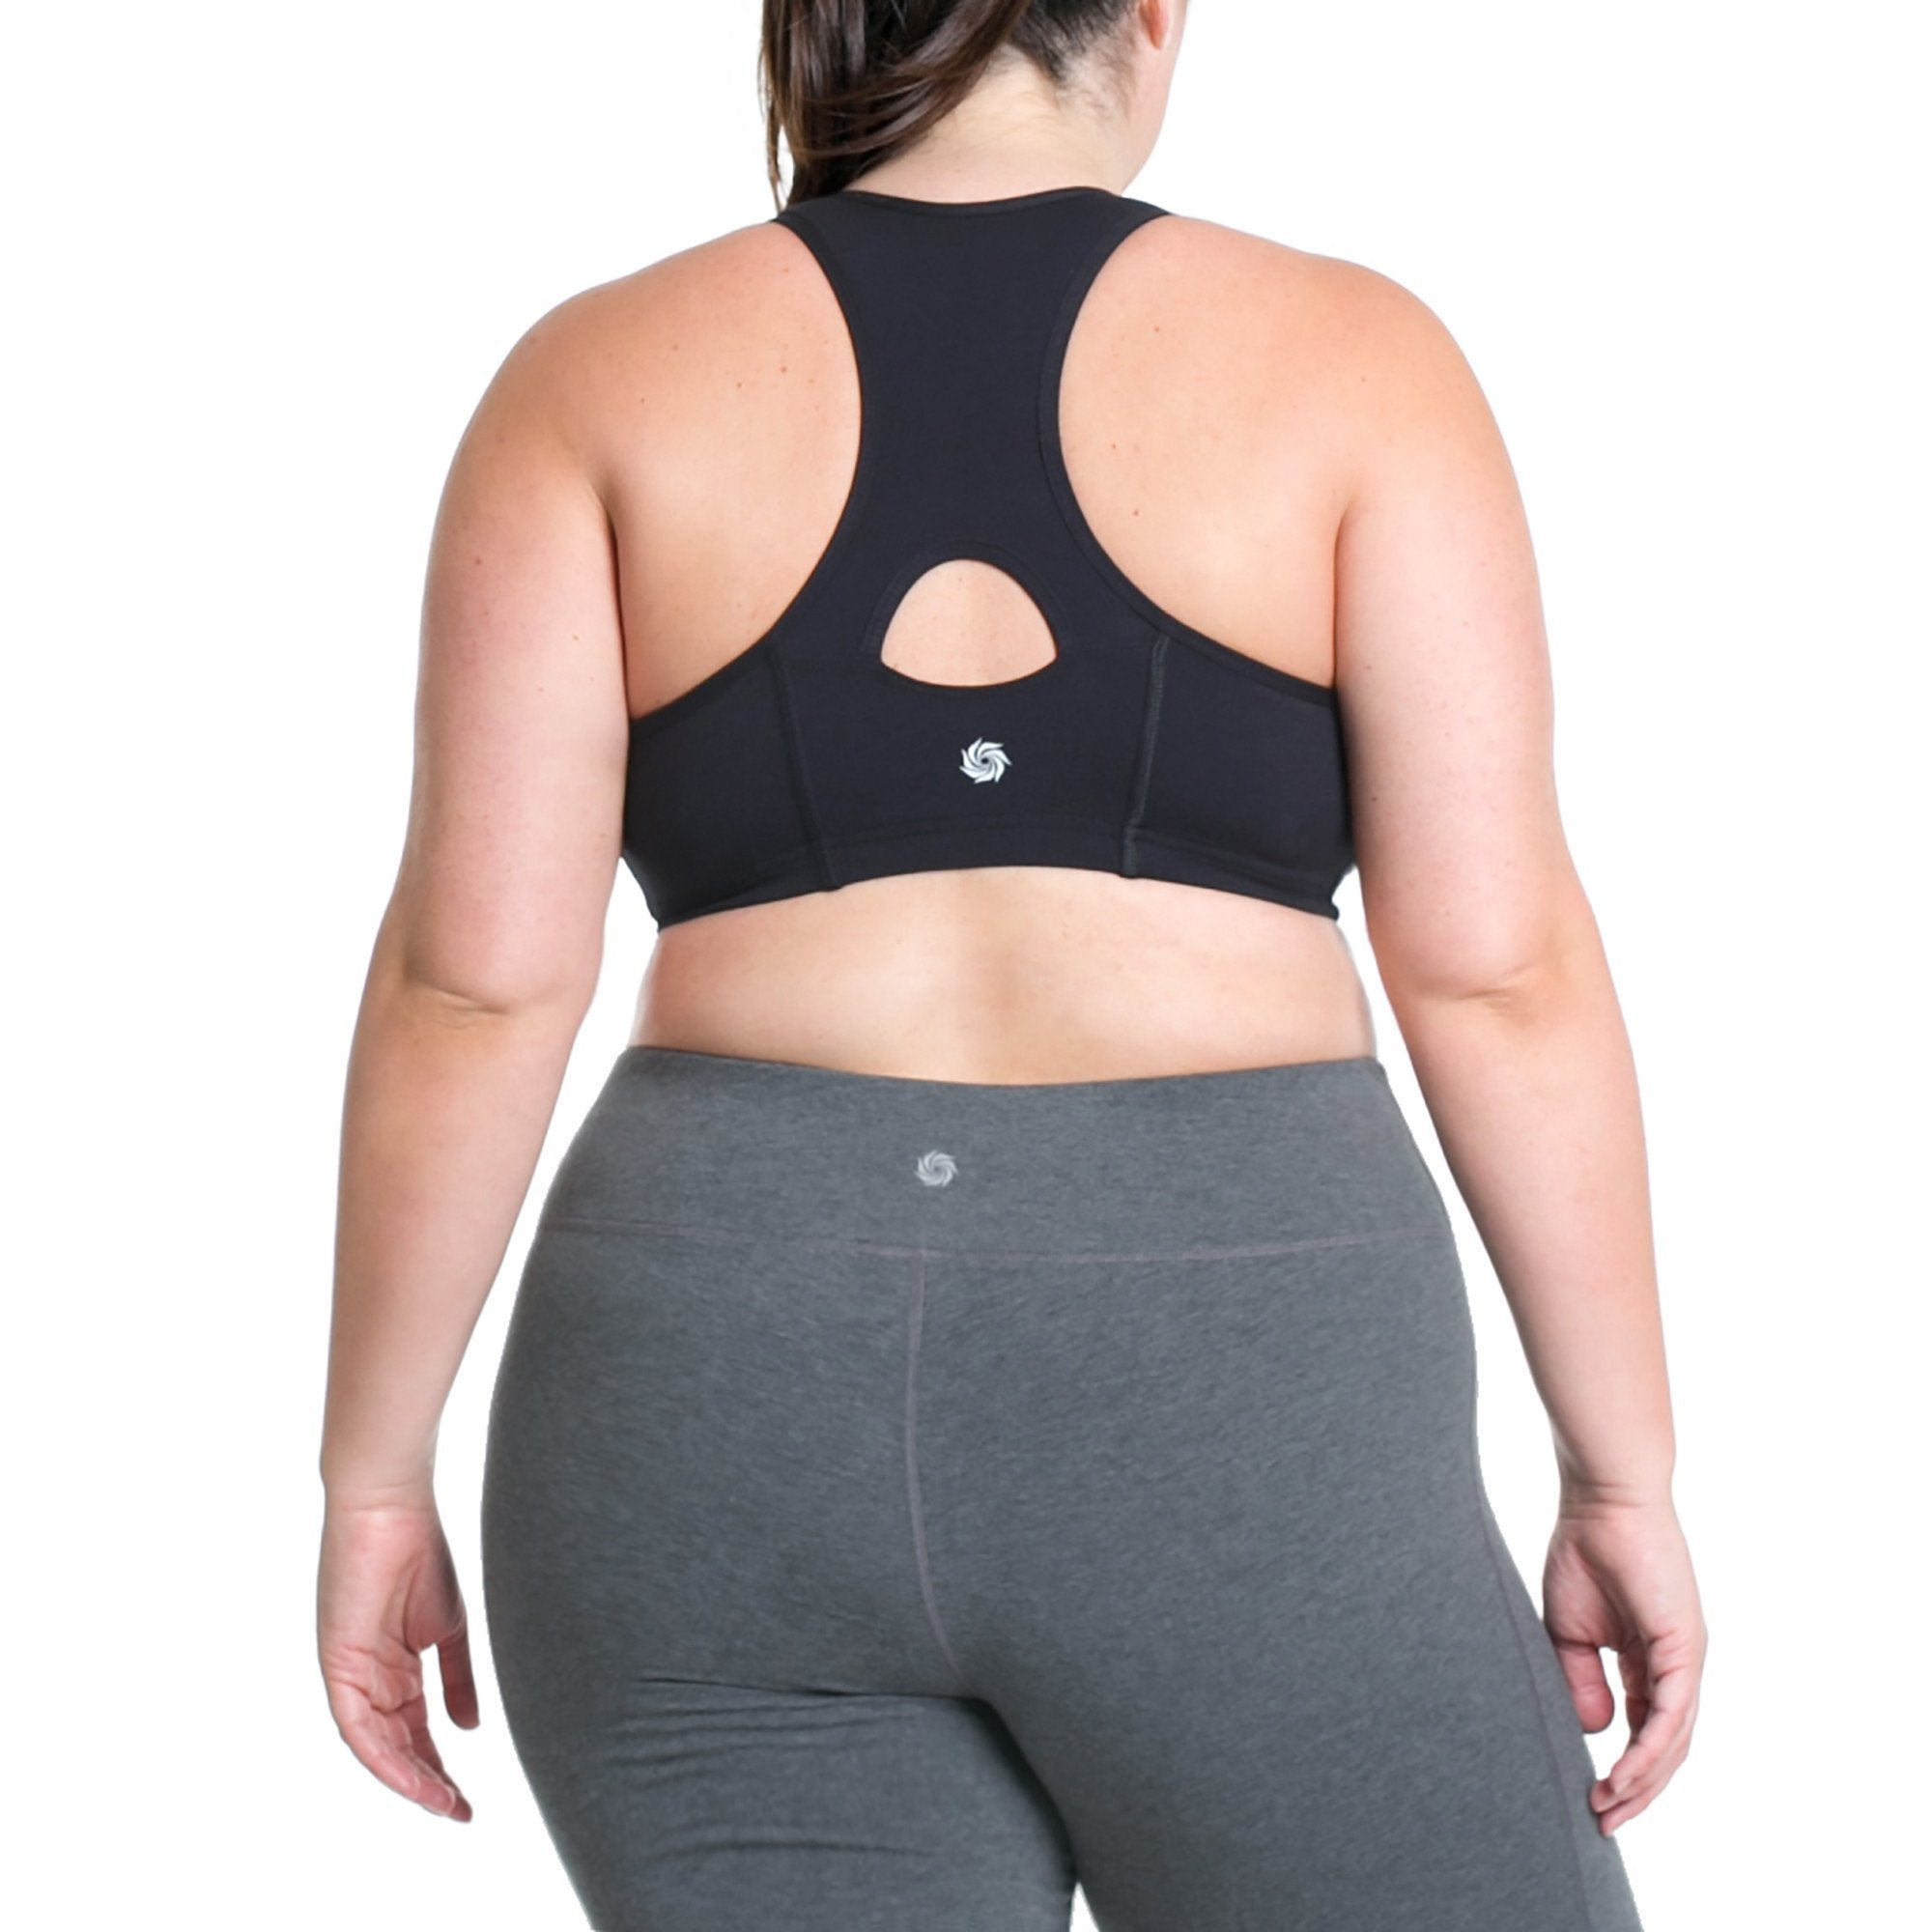 2019 year for lady- How lucy many activewear stores are there